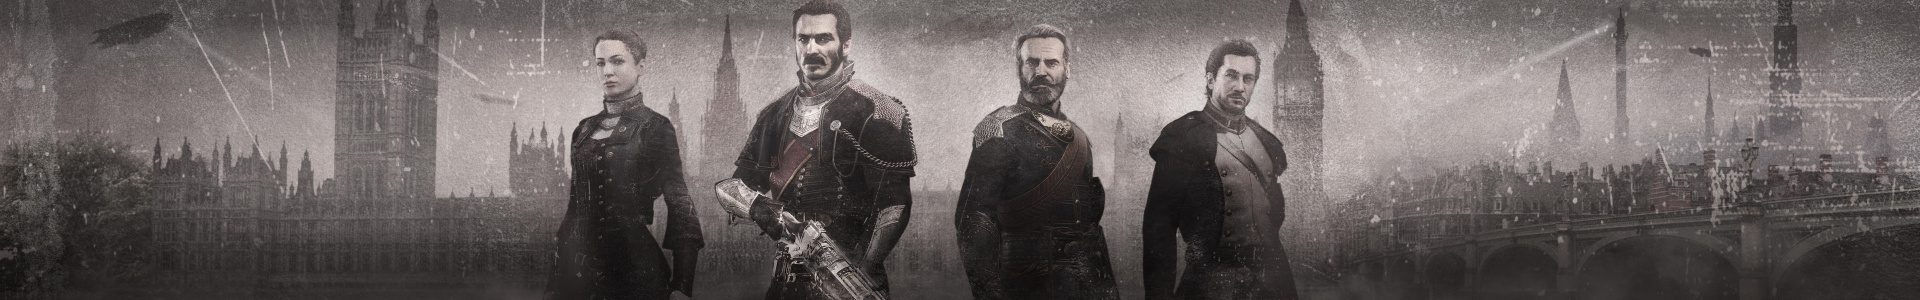 Pc The Order 1886 Download Torrent